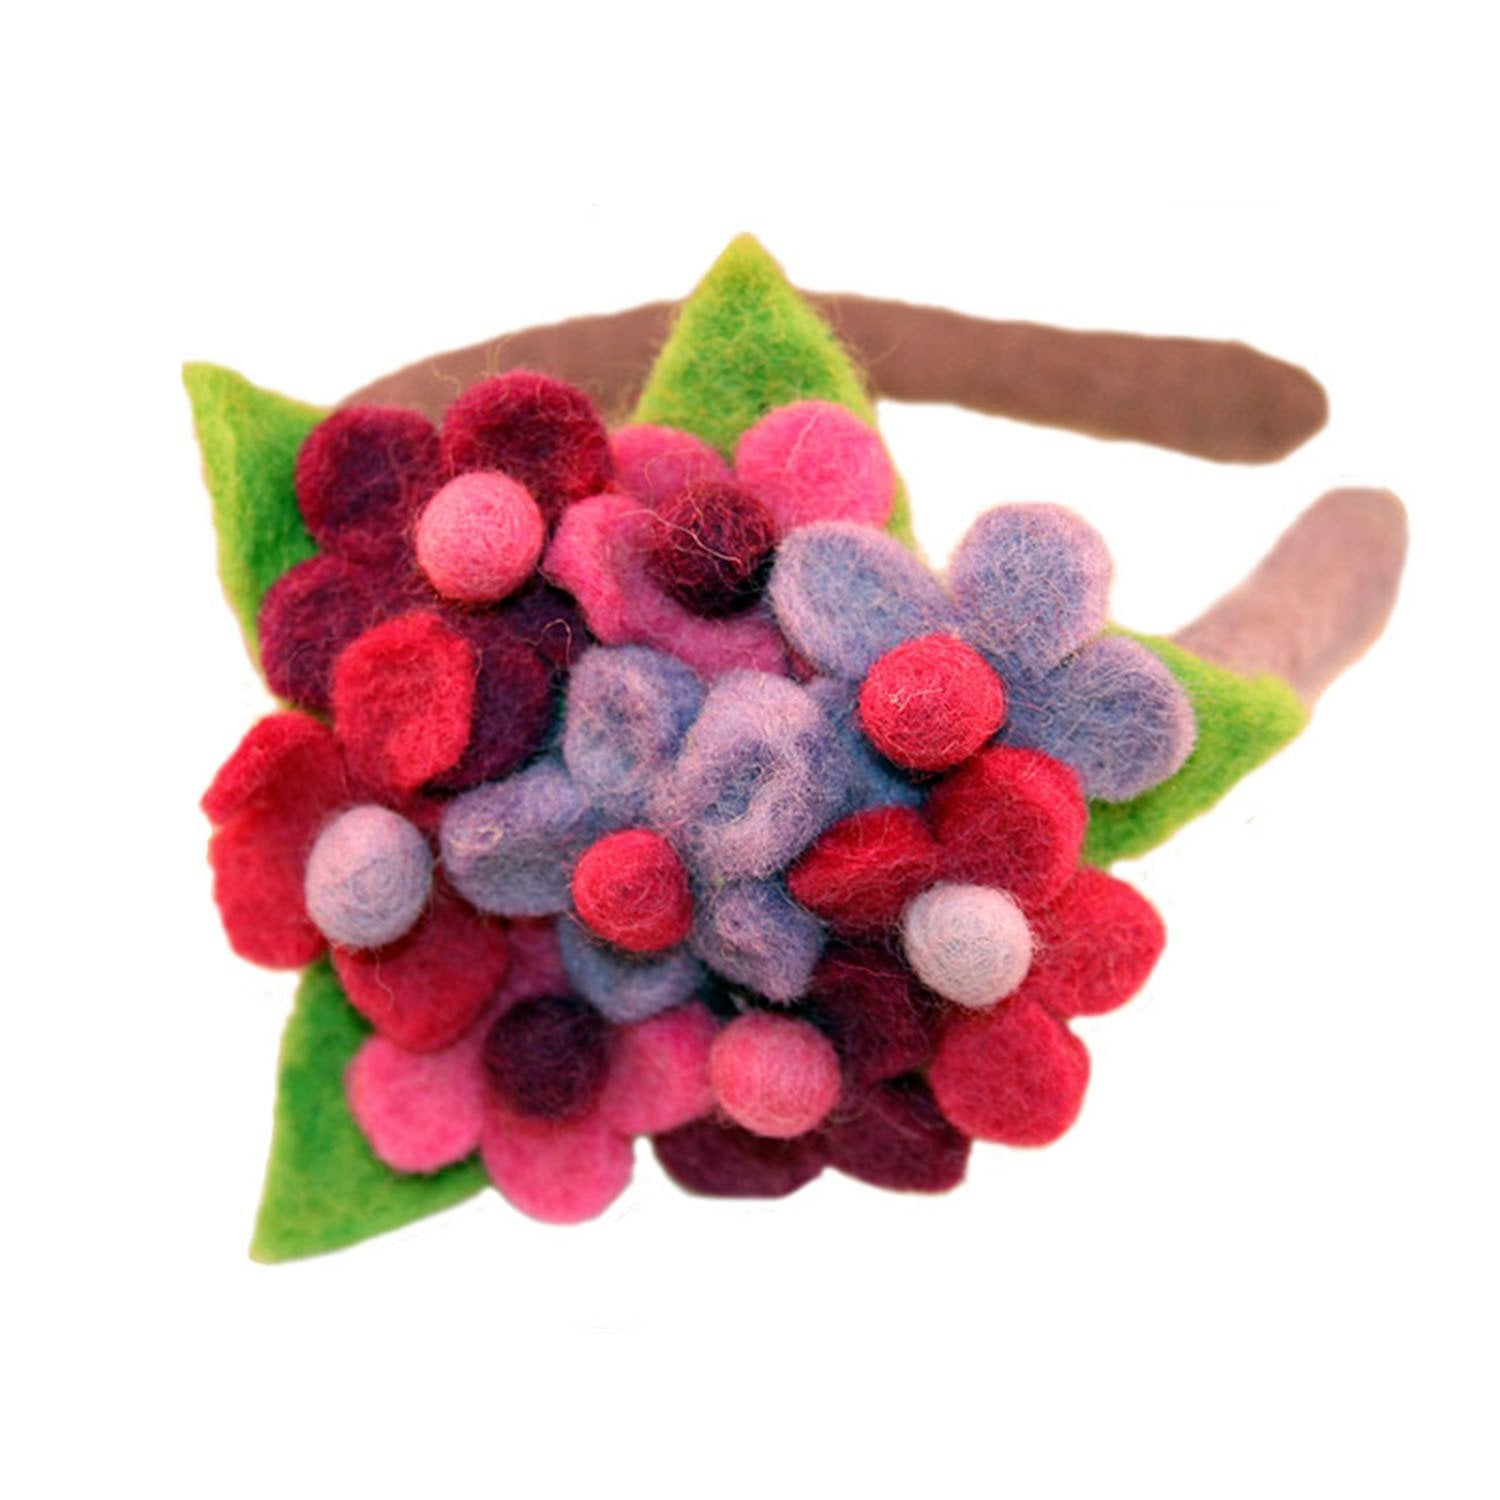 Hand Crafted Felt from Nepal: Headband, Flower